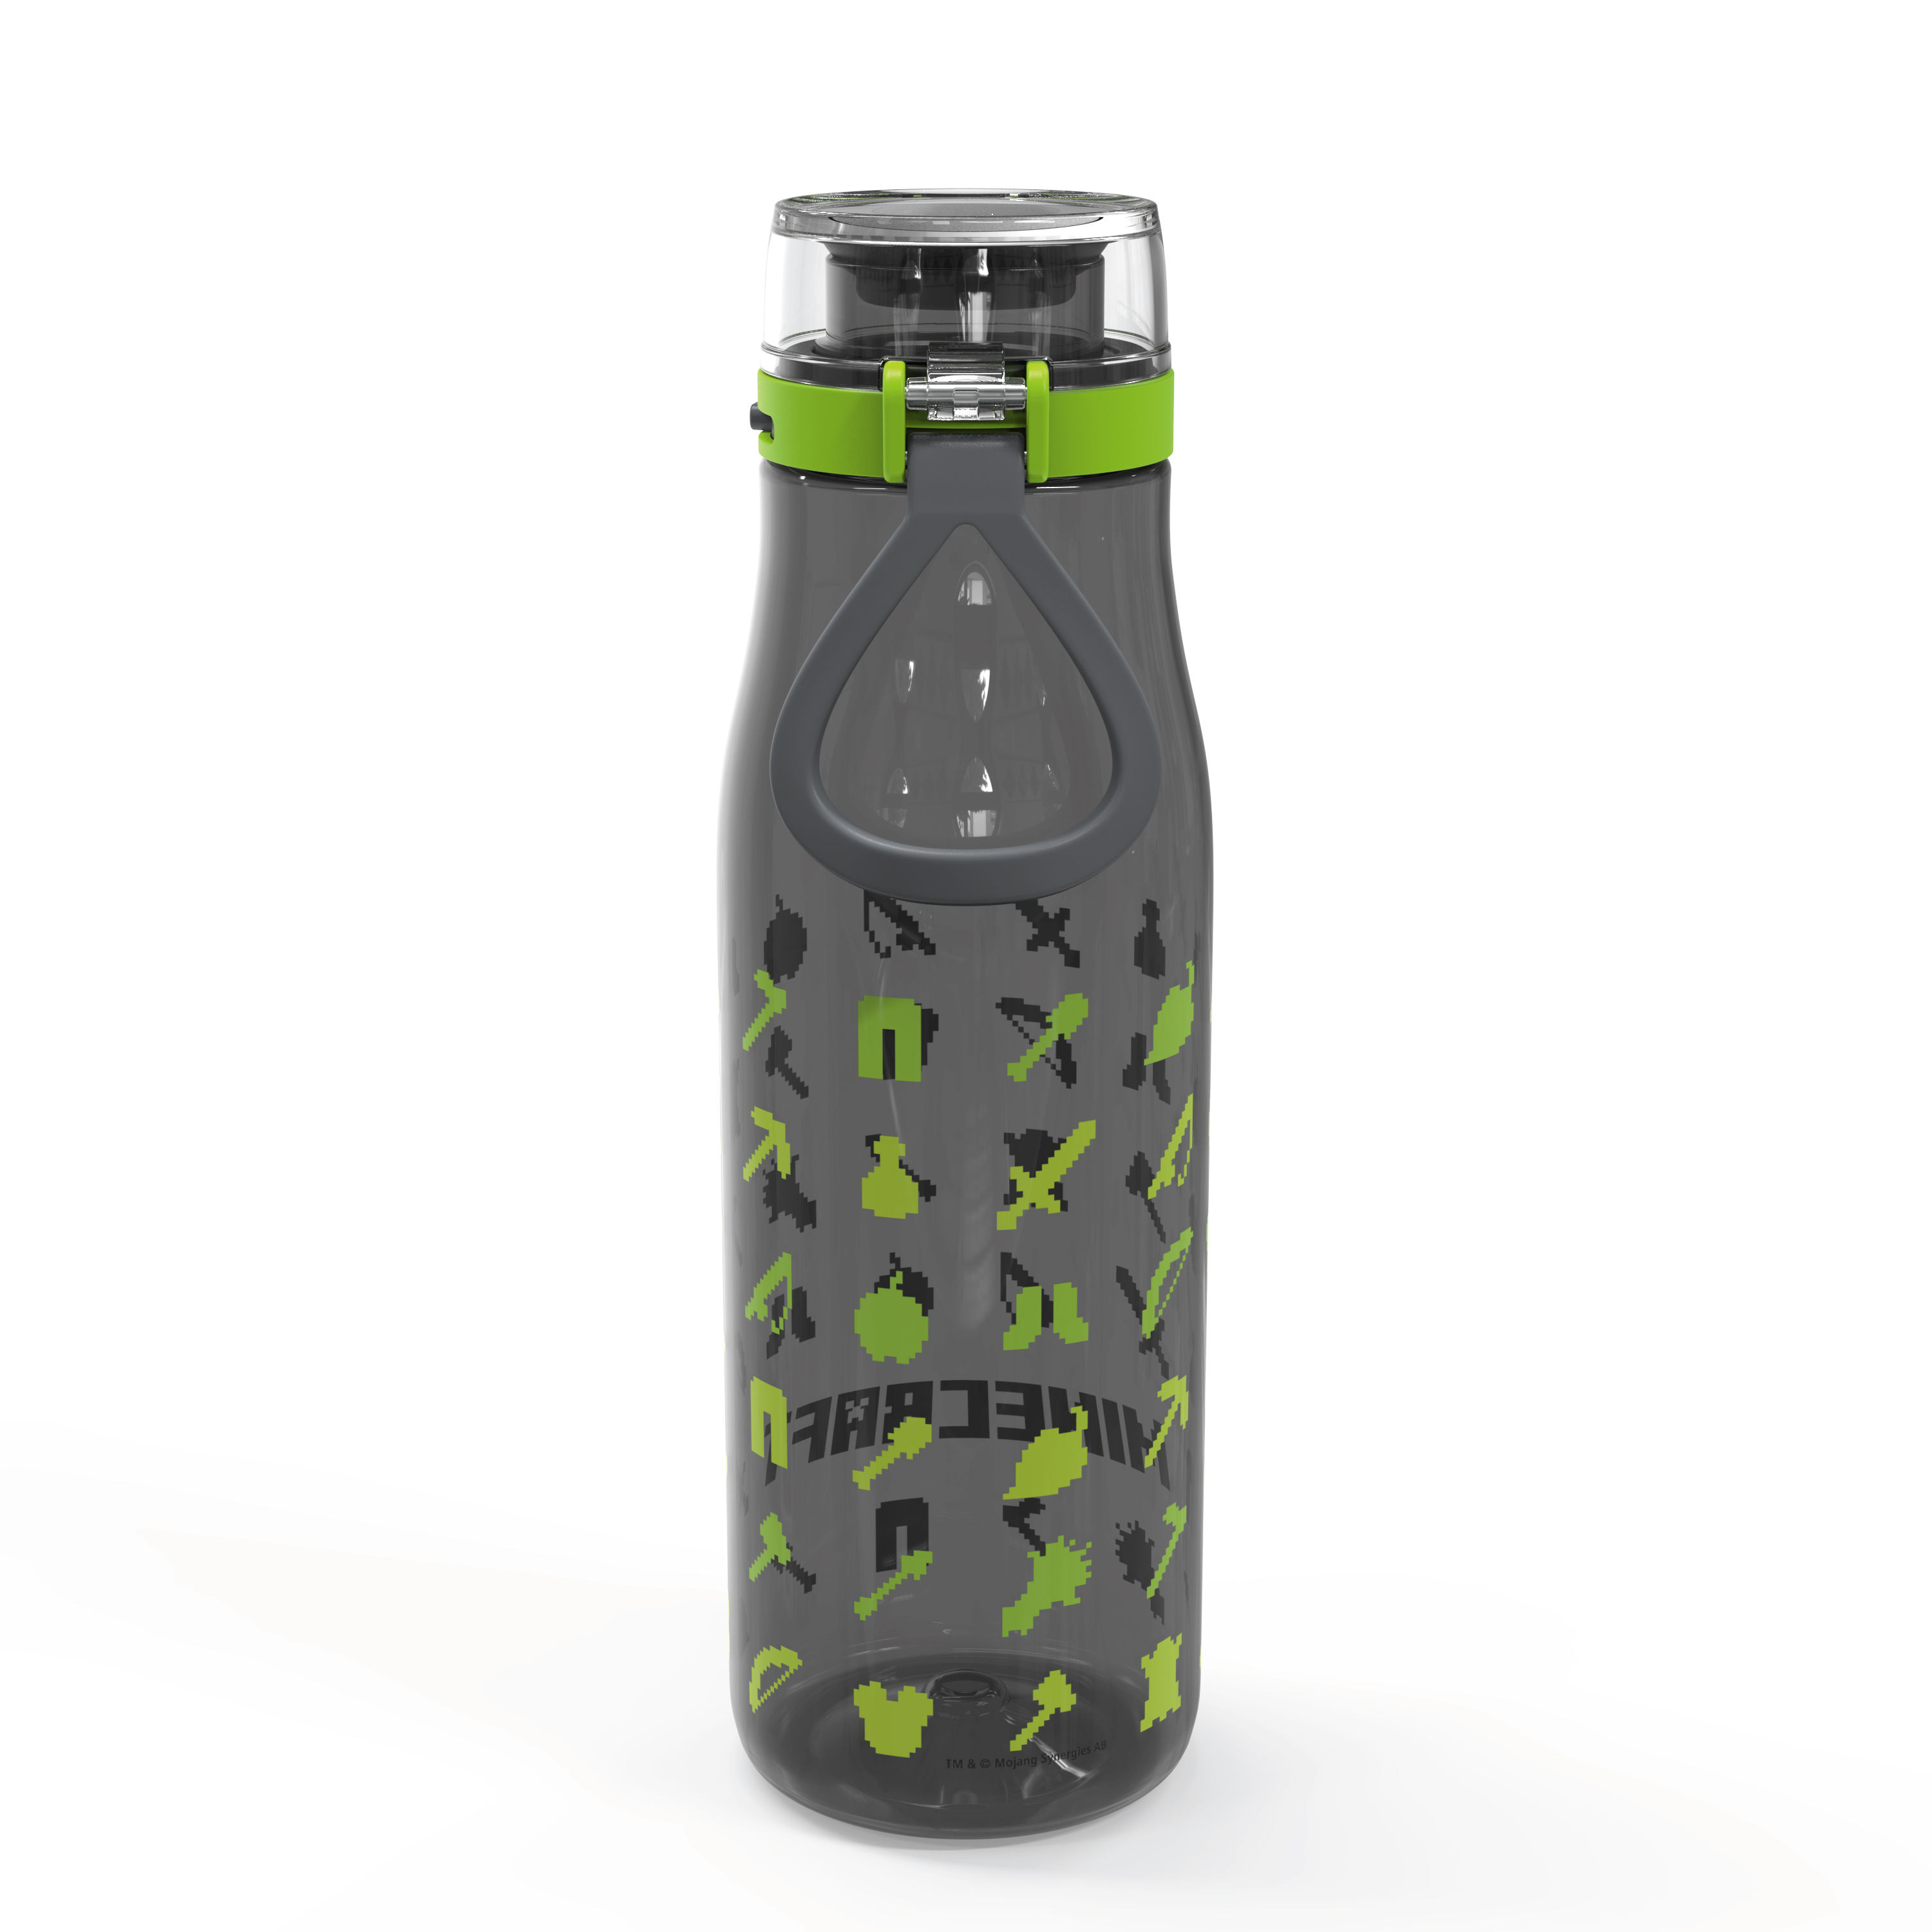 Minecraft 25 ounce Water Bottle and Straws, Weapons and Tools, 3-piece set slideshow image 4